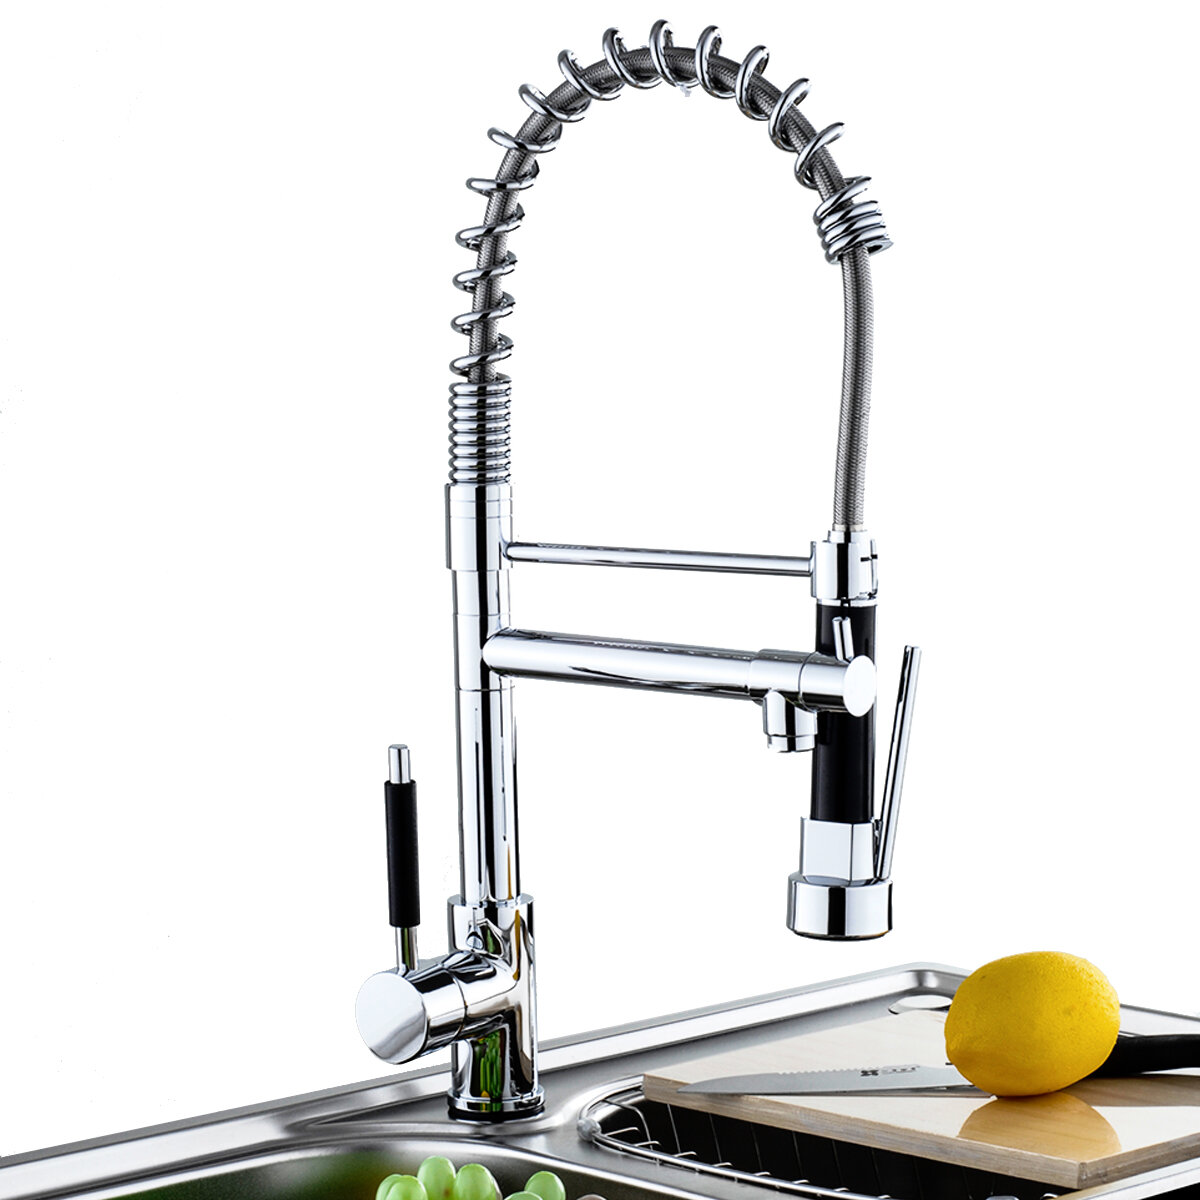 Kitchen Sink Mixer Faucet Pull Out Sparyer Tap Single Handle Chrome Brass Brushed Tap Collapsible